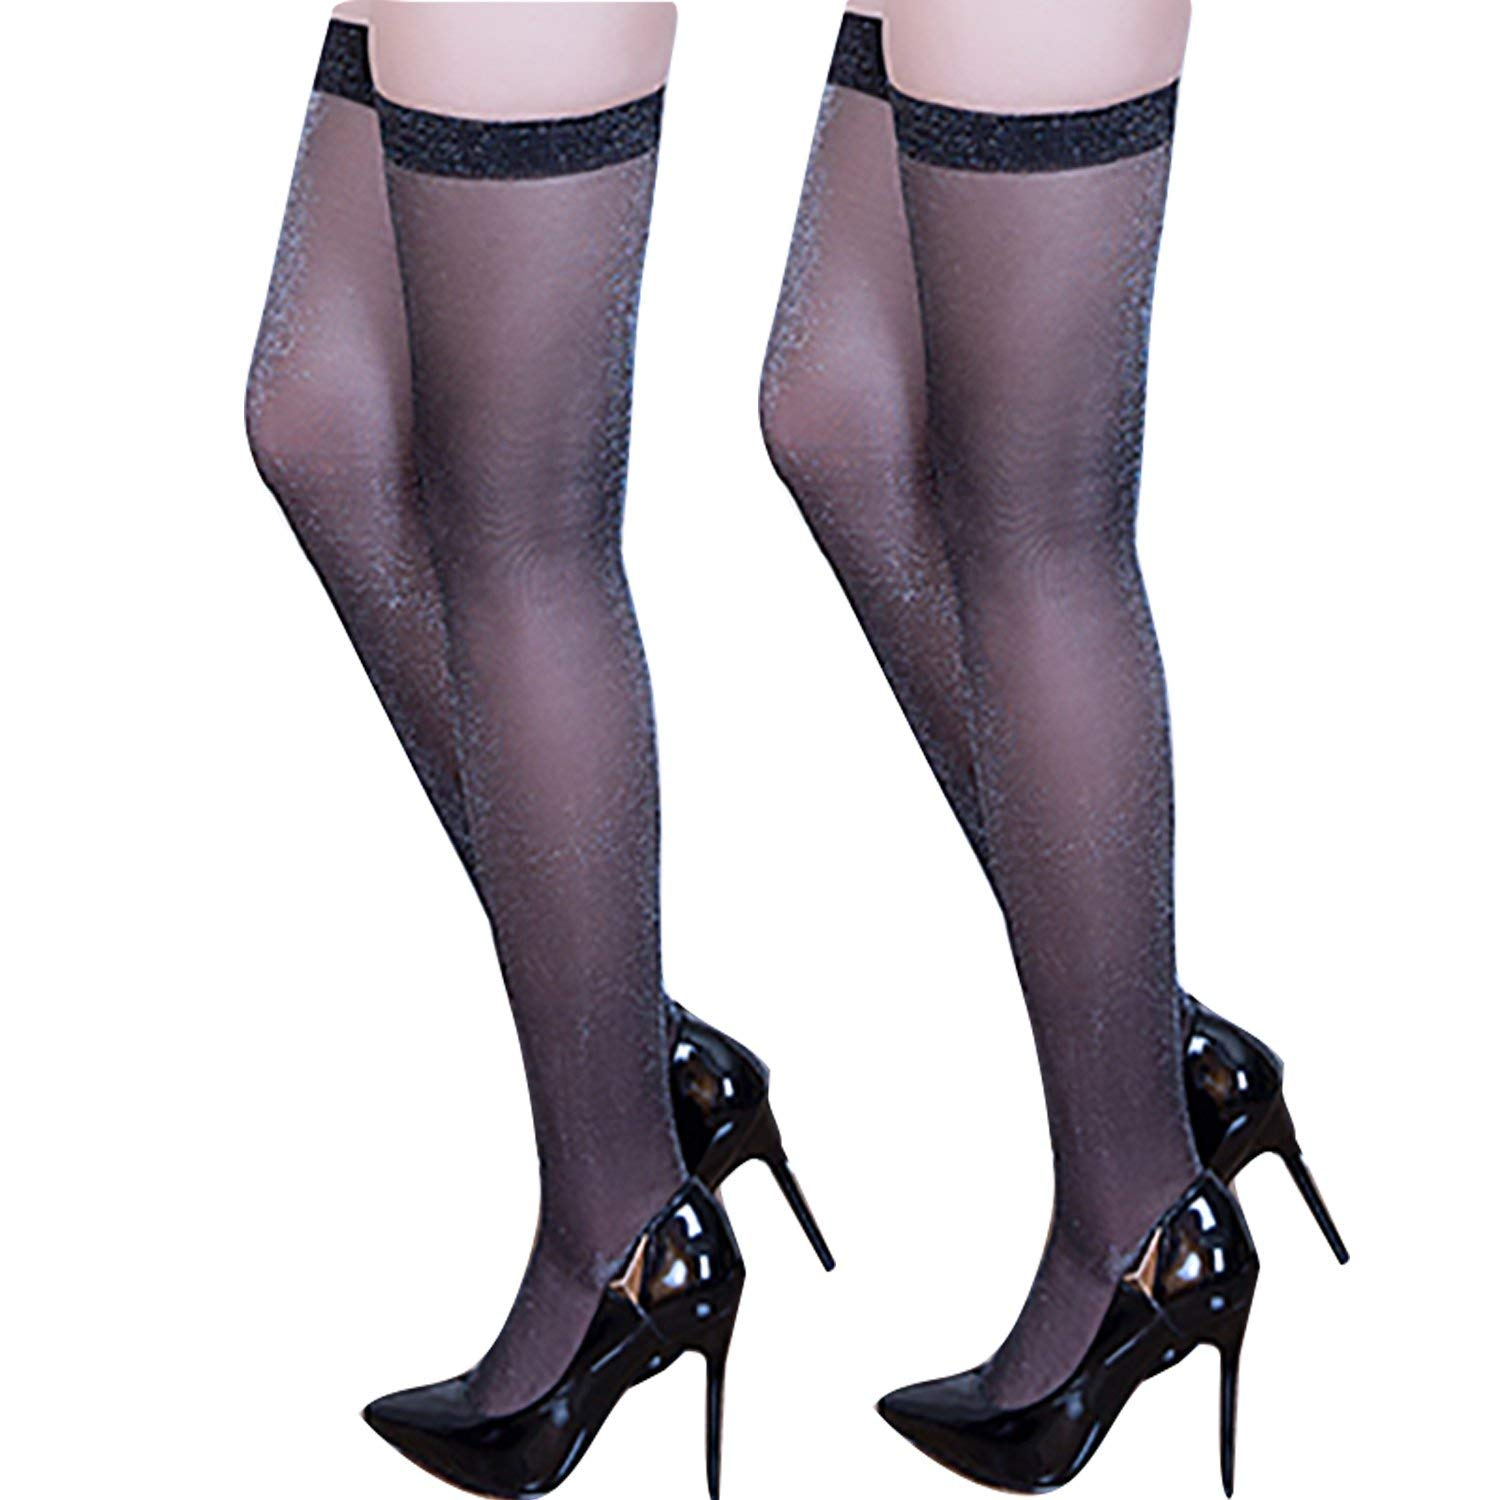 45a1f37e6 Get Quotations · MILIAN Sexy Sparkly Shiny Thigh High Stockings - Silk Over  Knee Stockings for Party or Dance